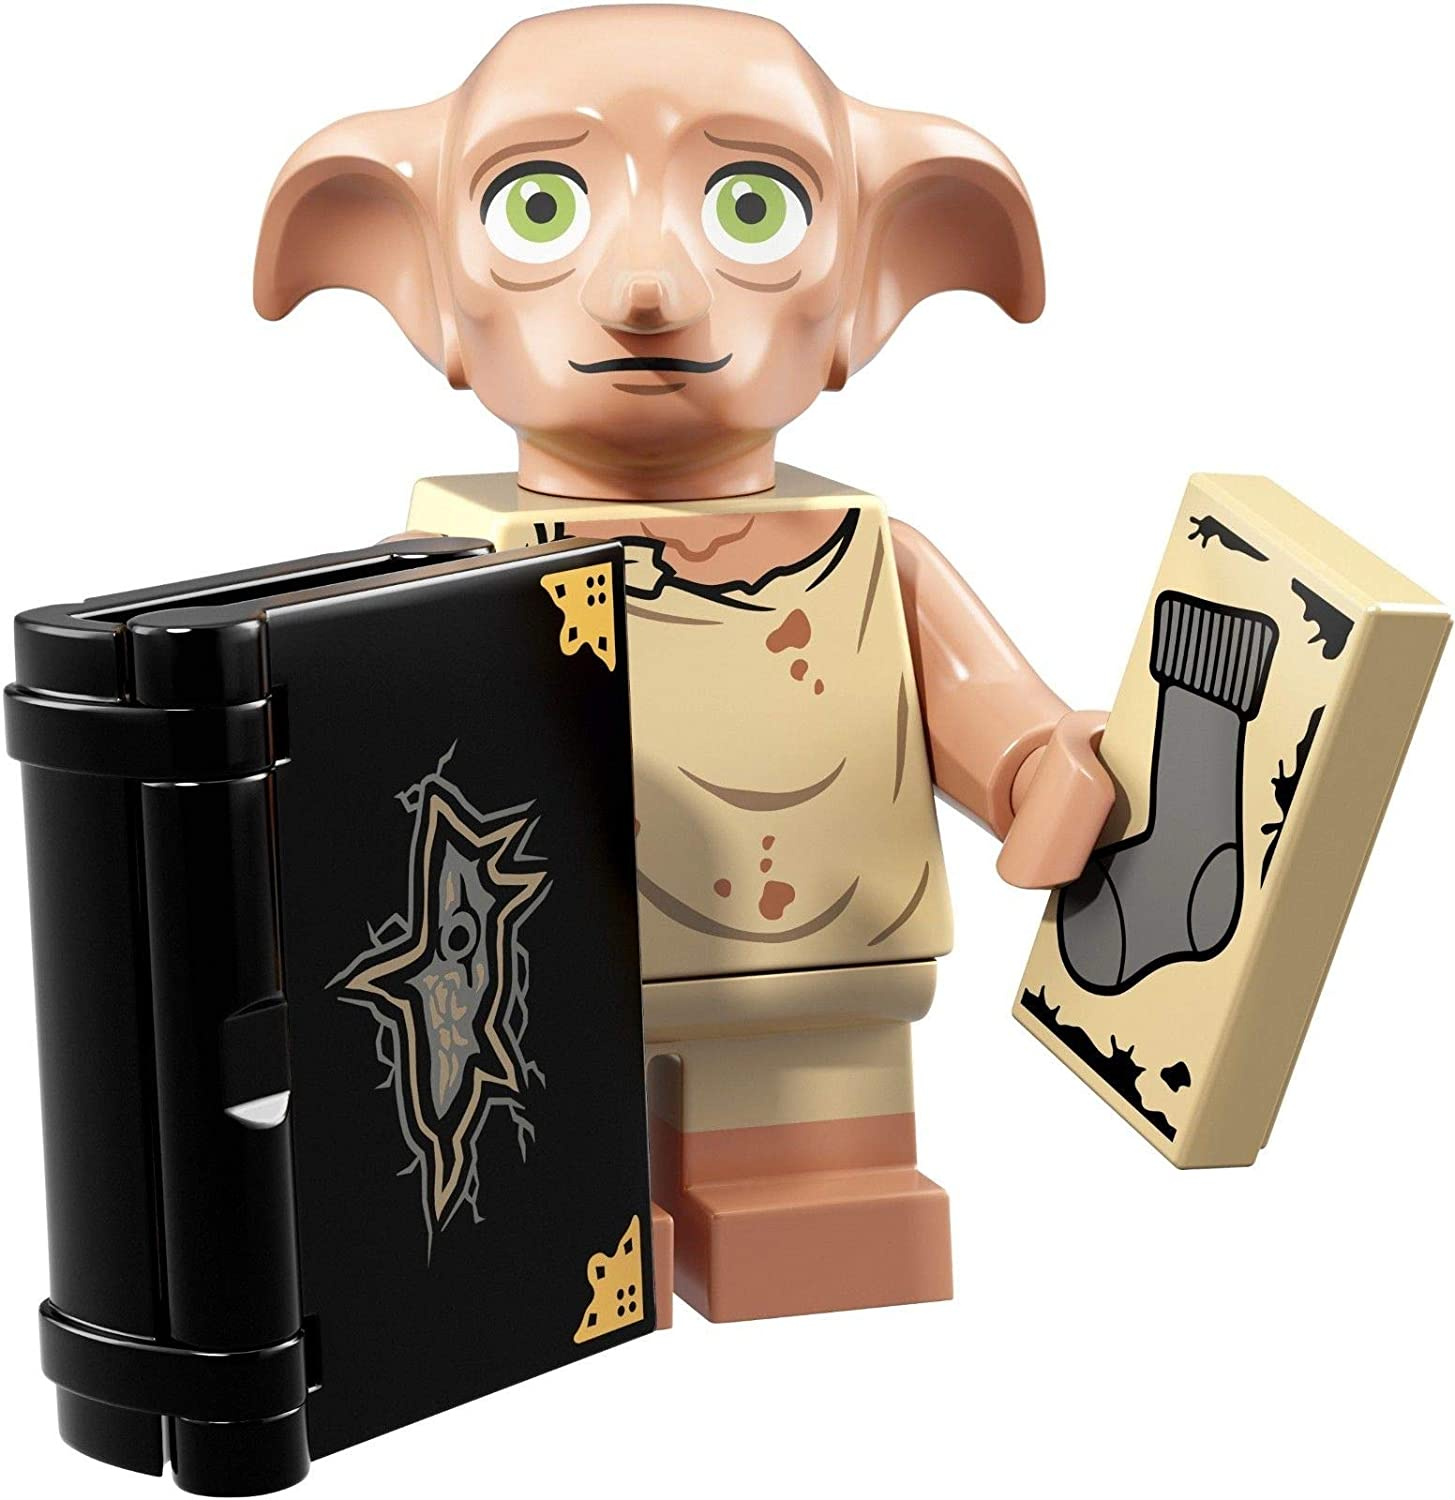 LEGO Harry Potter Series - Dobby - 71022